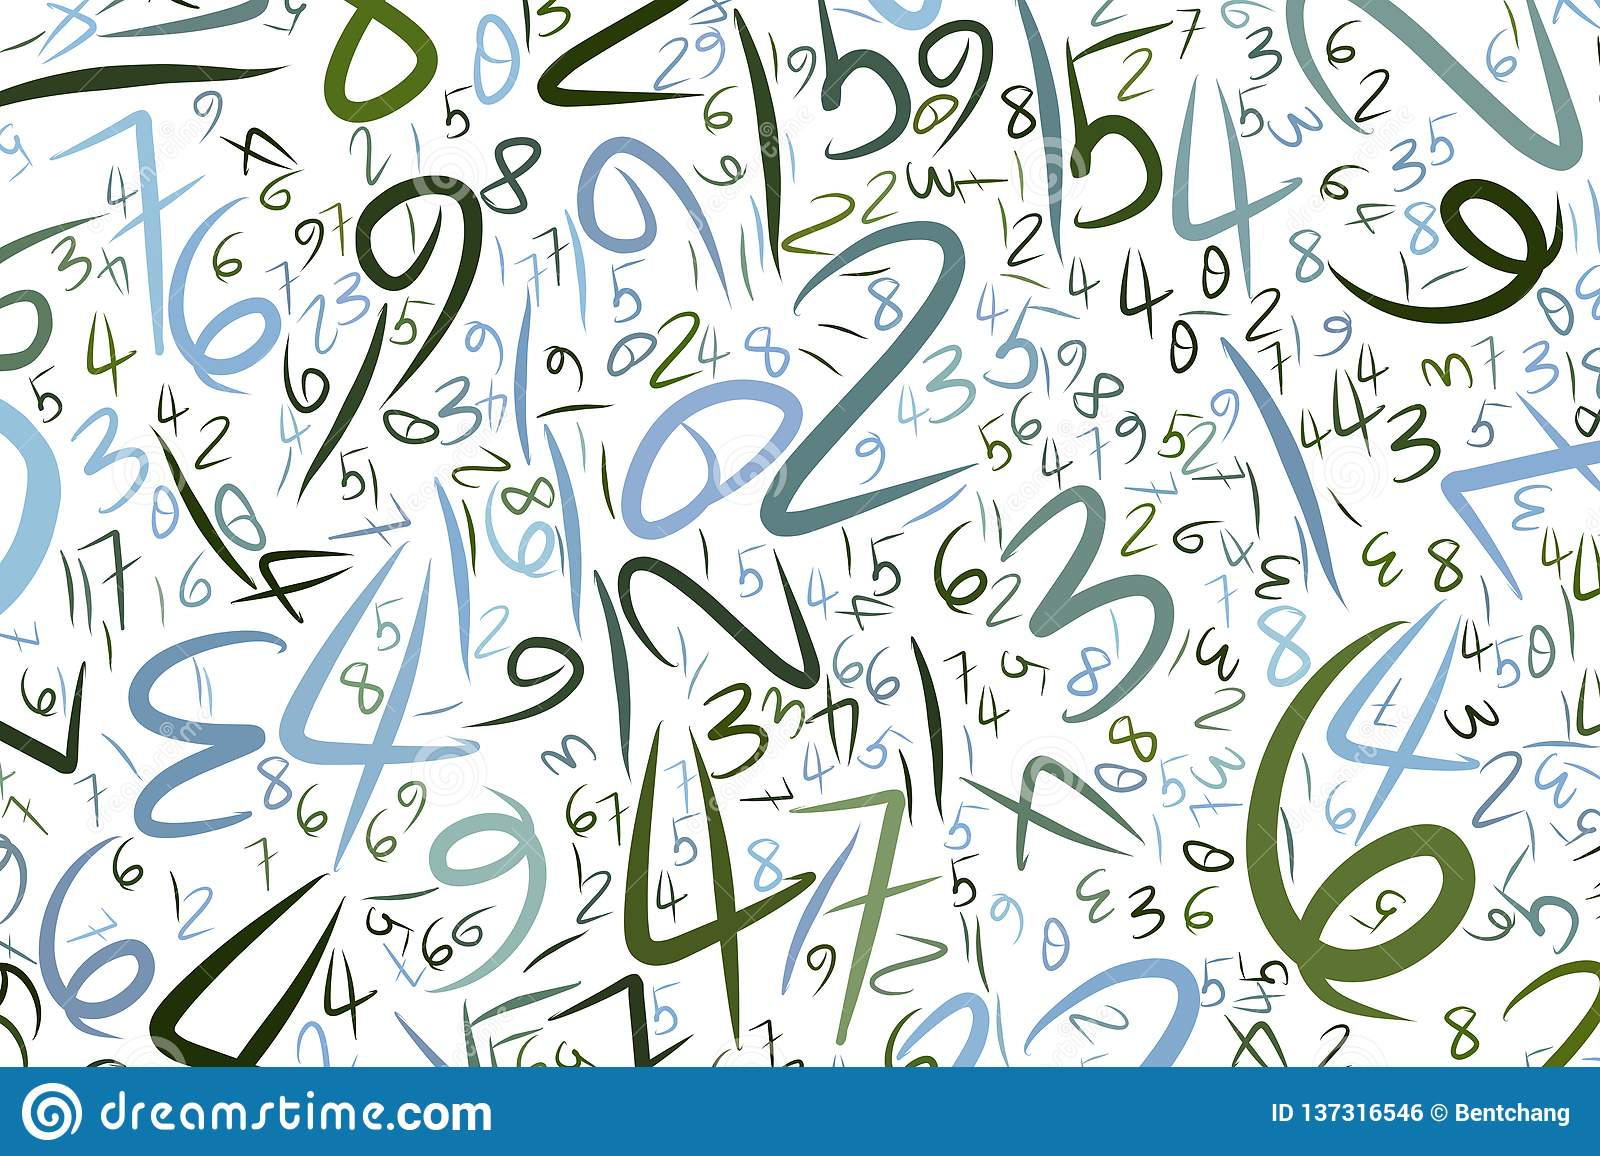 Abstract Letter Art Backgrounds